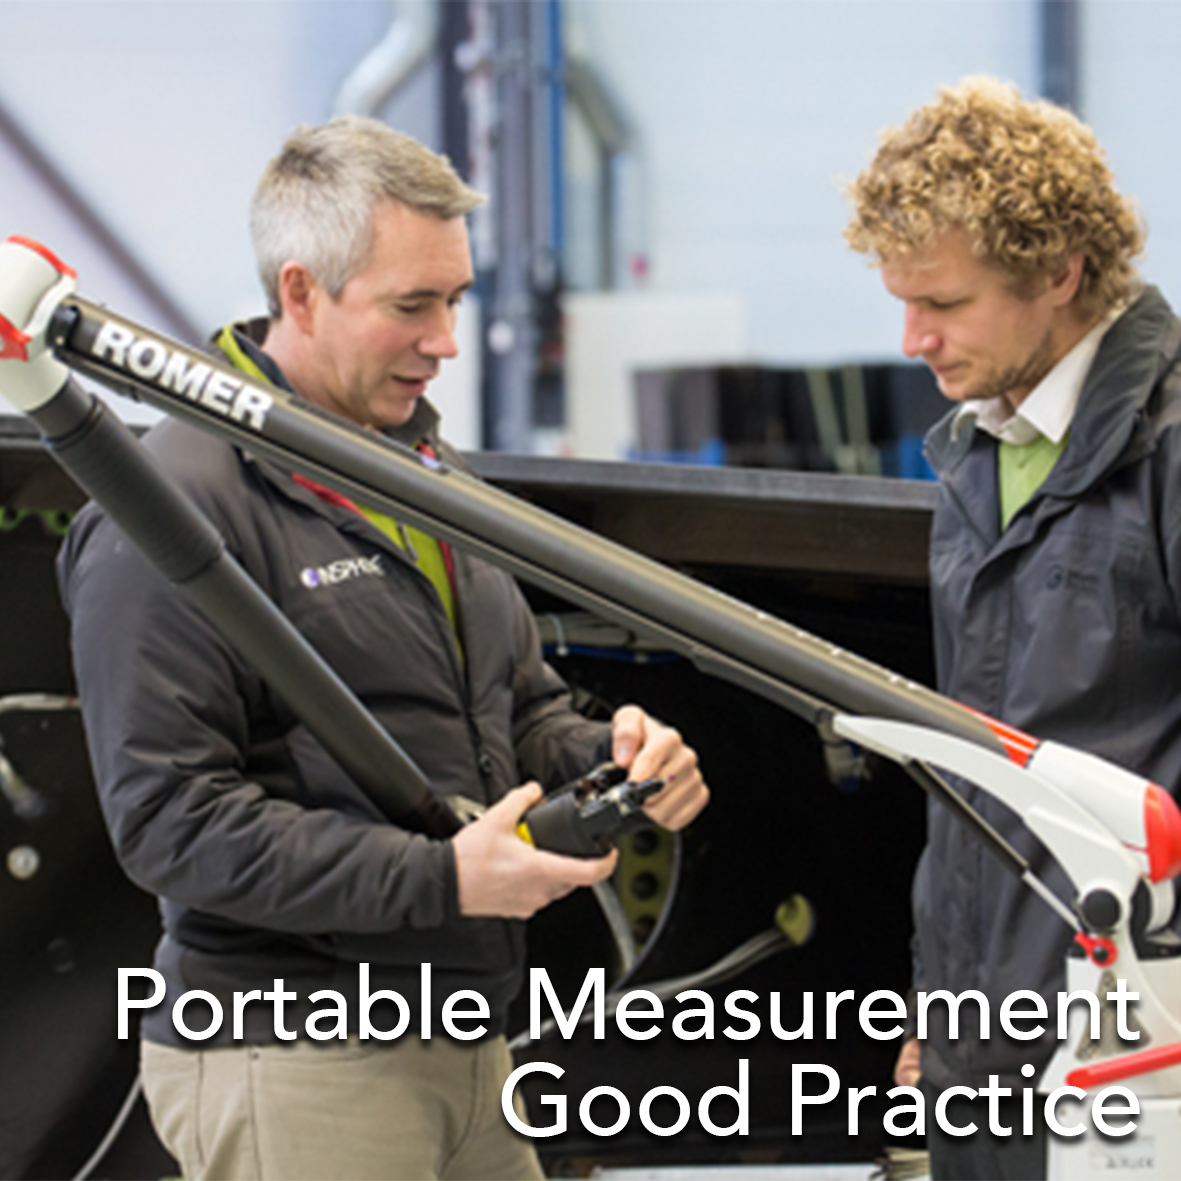 Portable Measurement Good Practice   Measurement data from Laser Trackers and Portable Arms can be signific antly influenced by the operator and how they approach the measurement task. This training helps implement good practice for portable metrology.   Contact Us For More Information